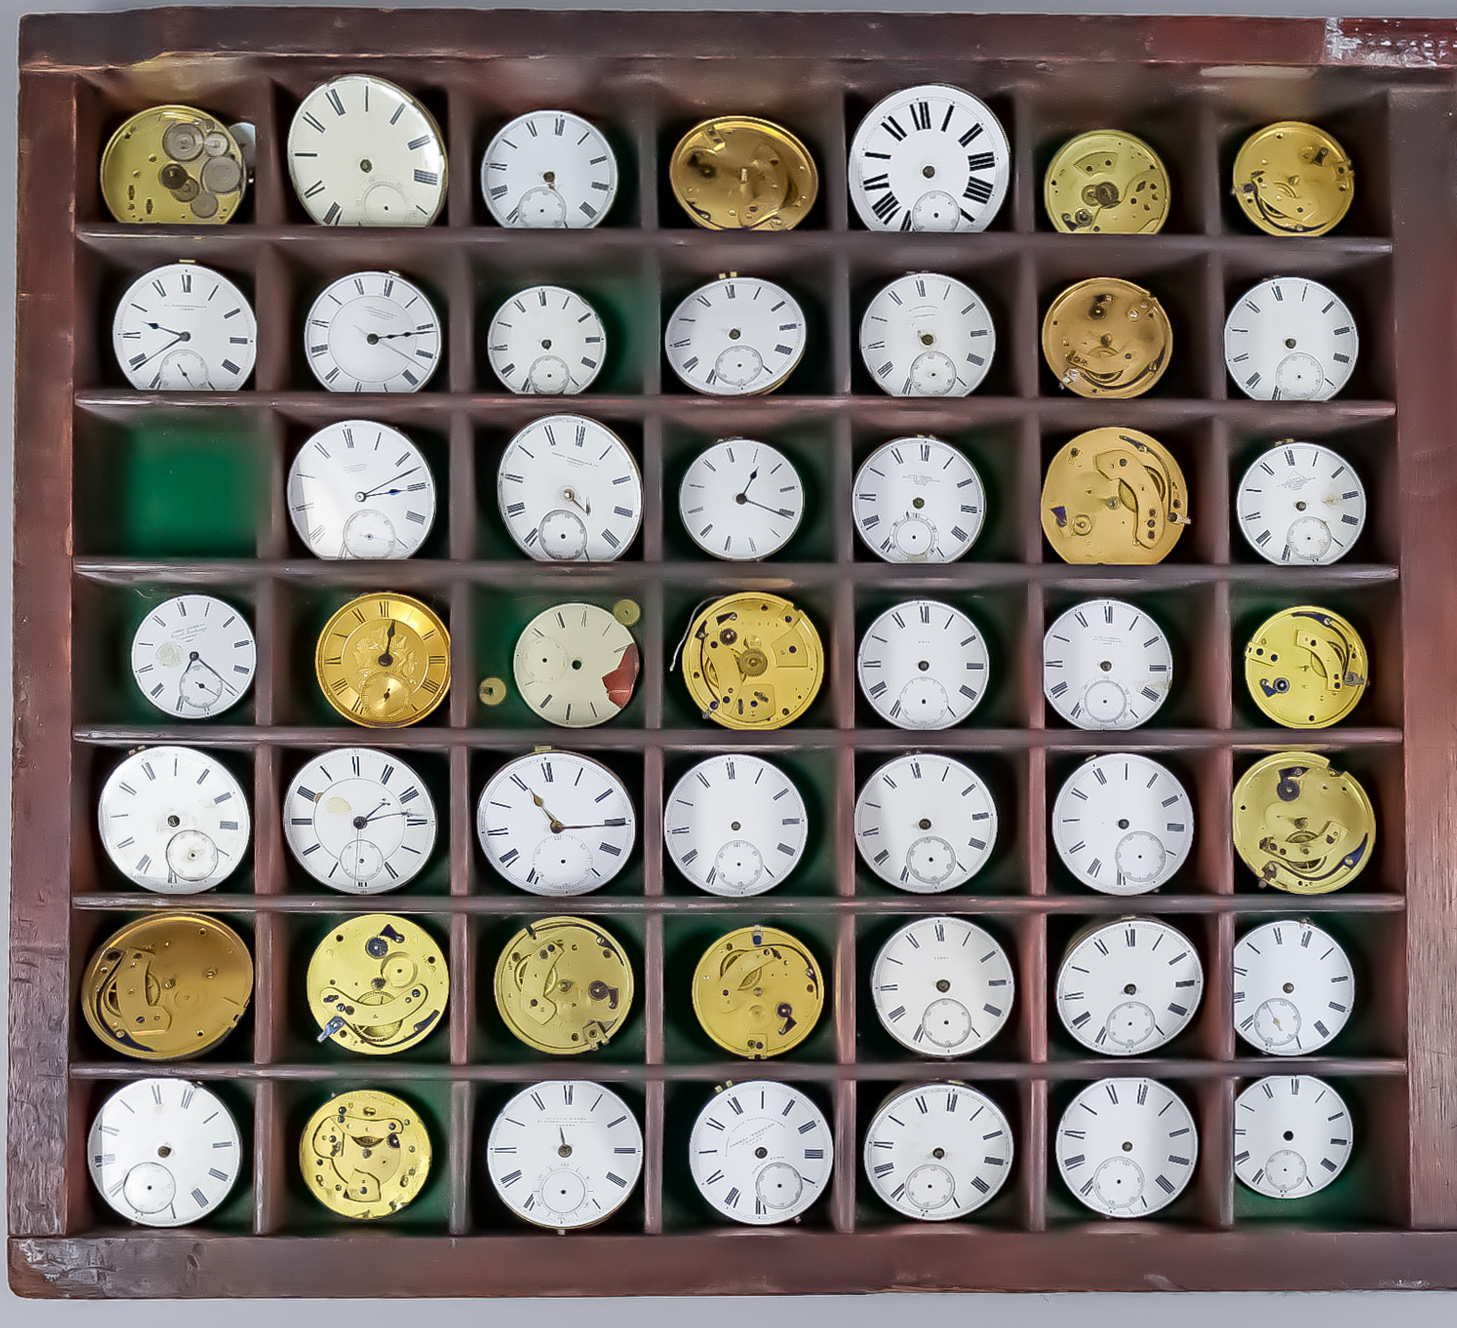 One Hundred and Three Assorted Pocket Watch Mechanisms, various makers and sundry items Note: